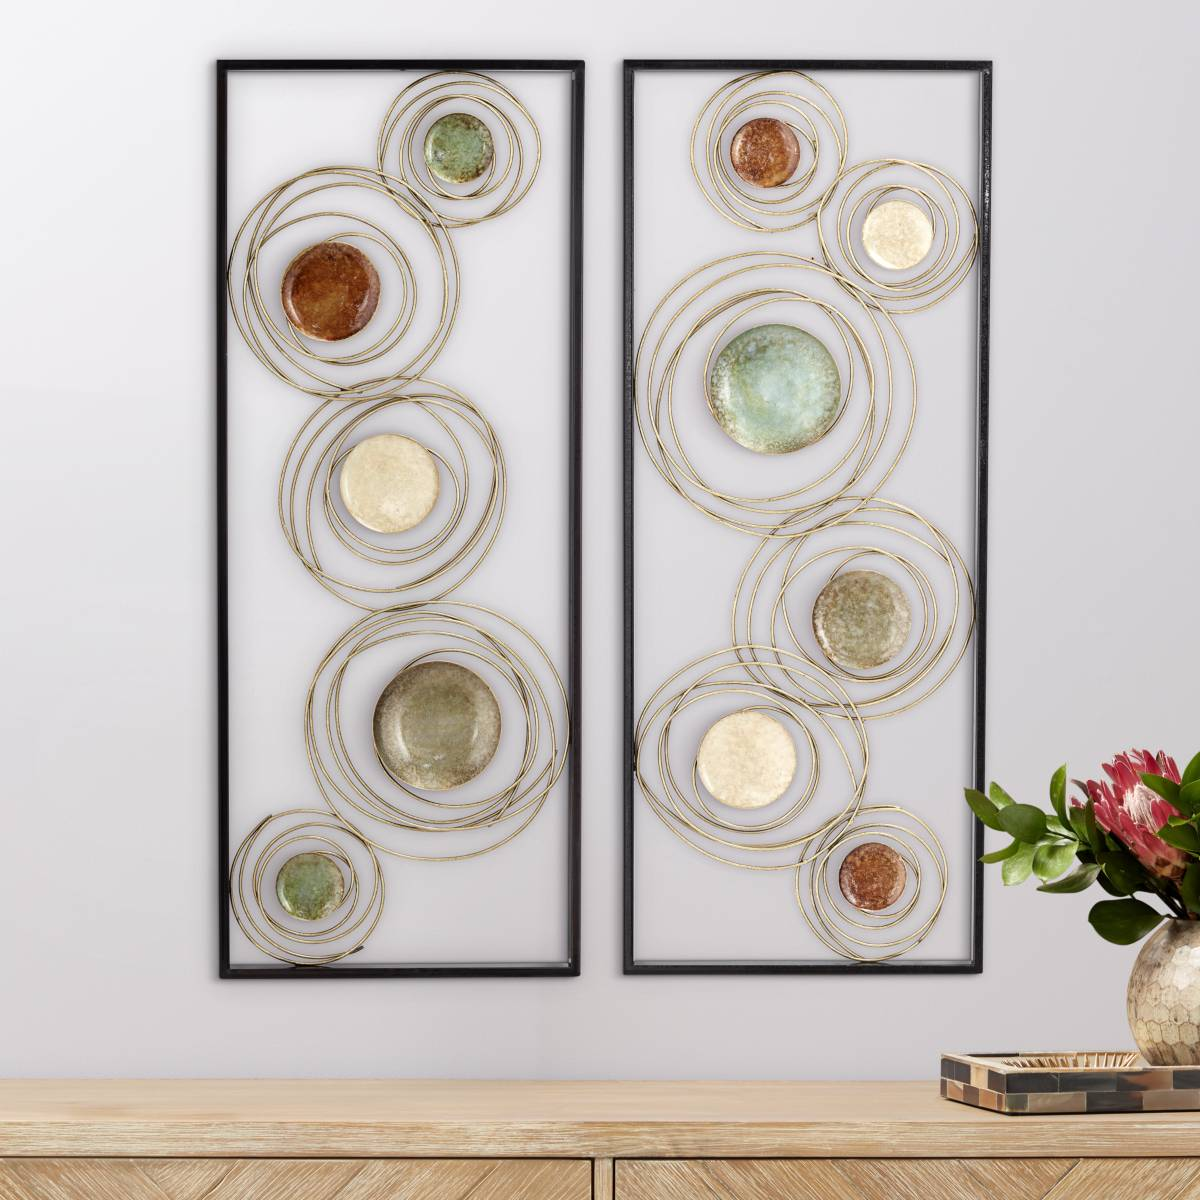 Lights Plus Decor: Metal Wall Art And Decor